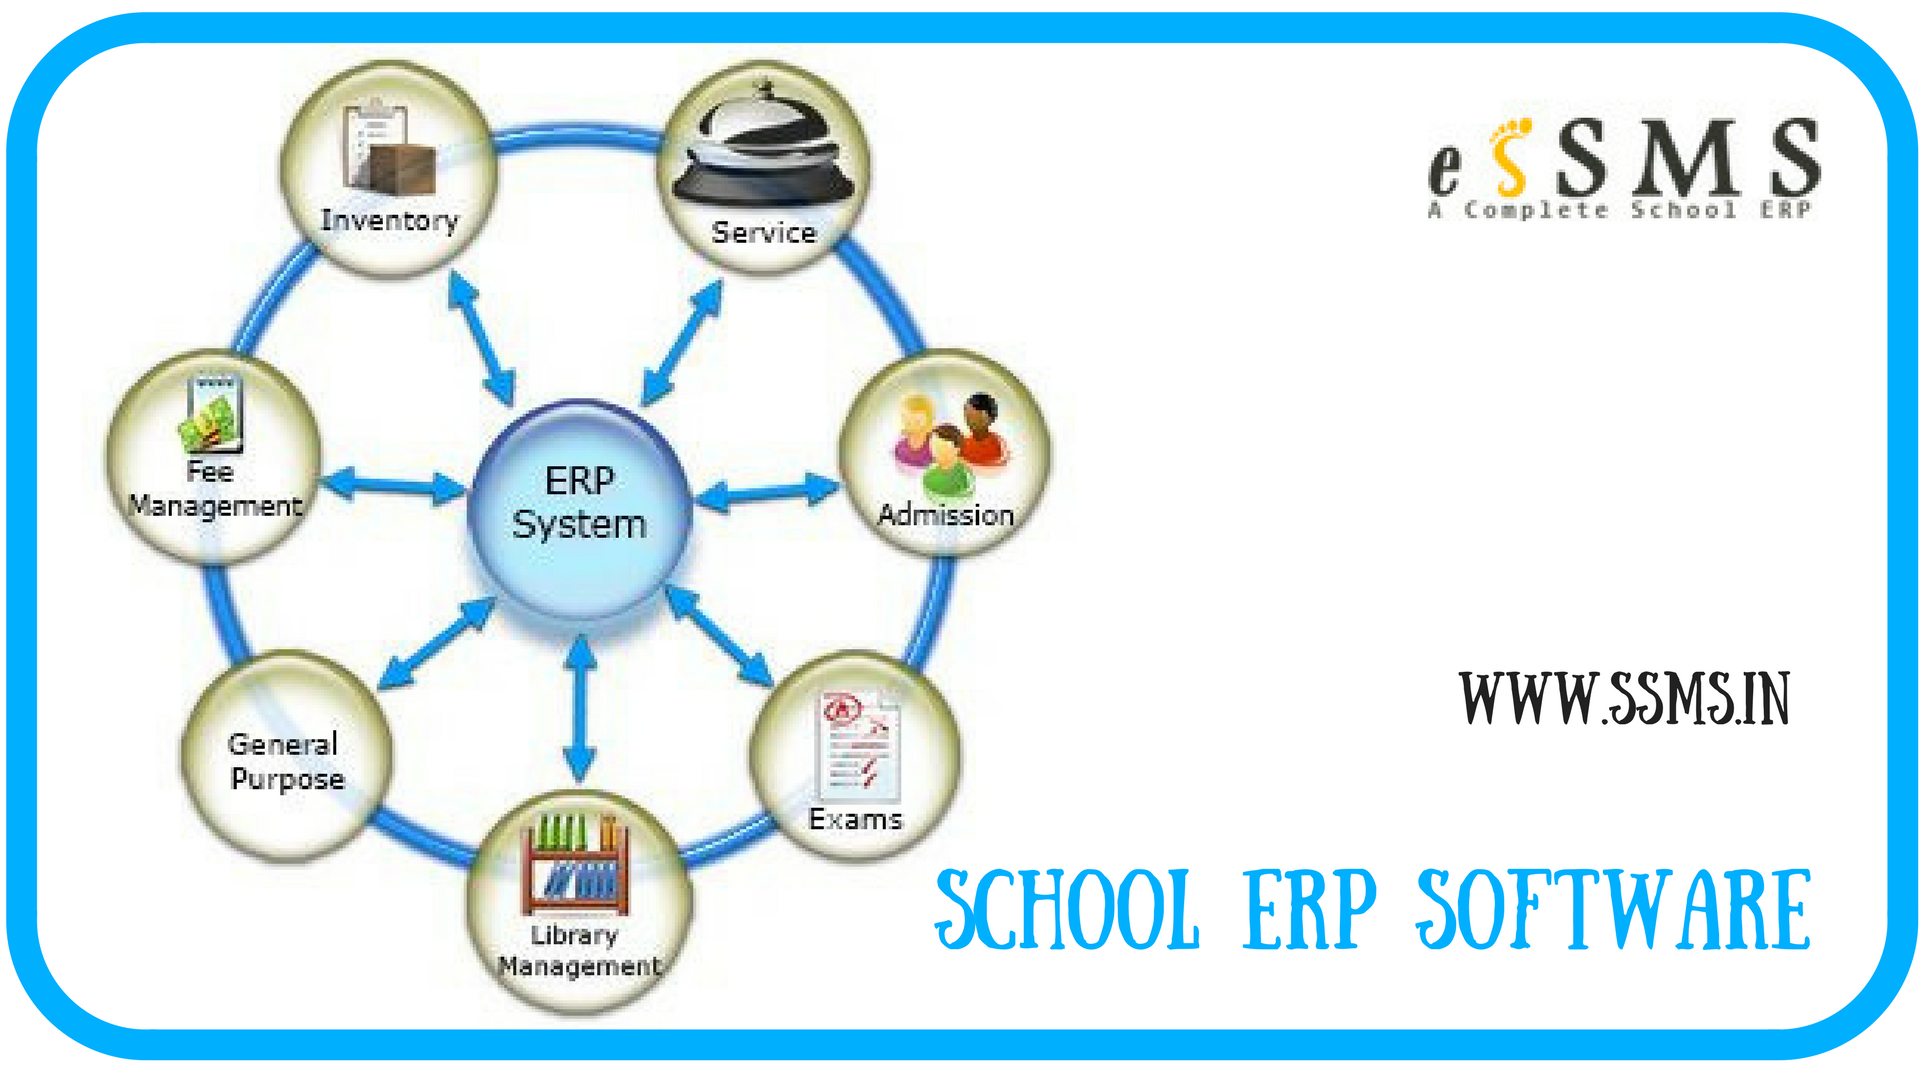 School Erp Software Is A Integrated Cloud Based